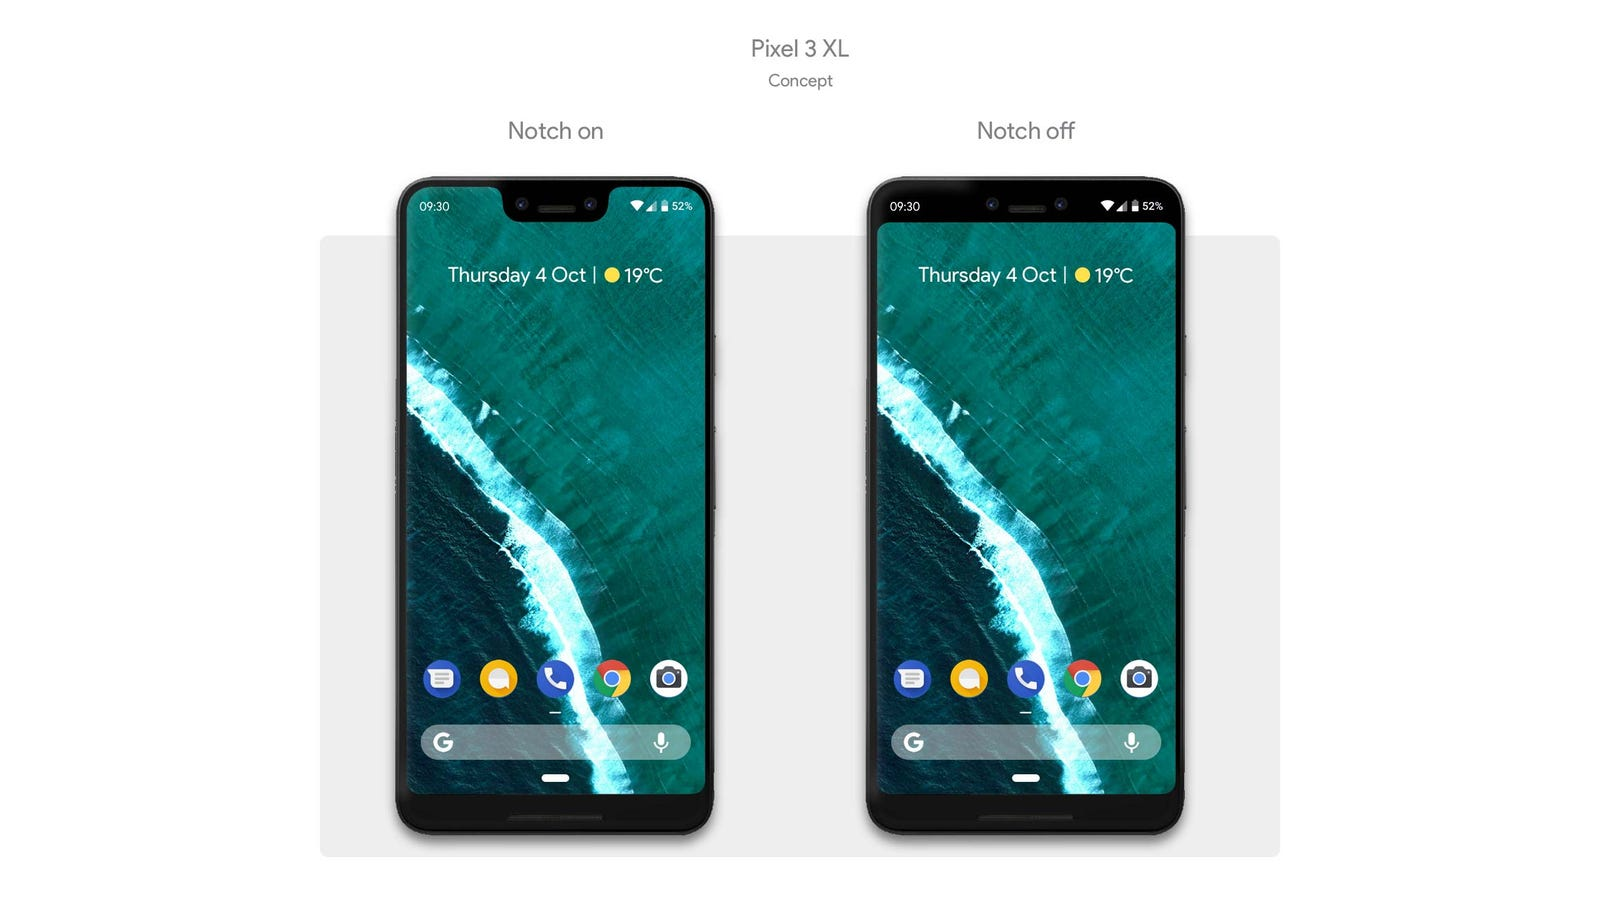 Is This What the Google Pixel 3 Smartphone Will Look Like?